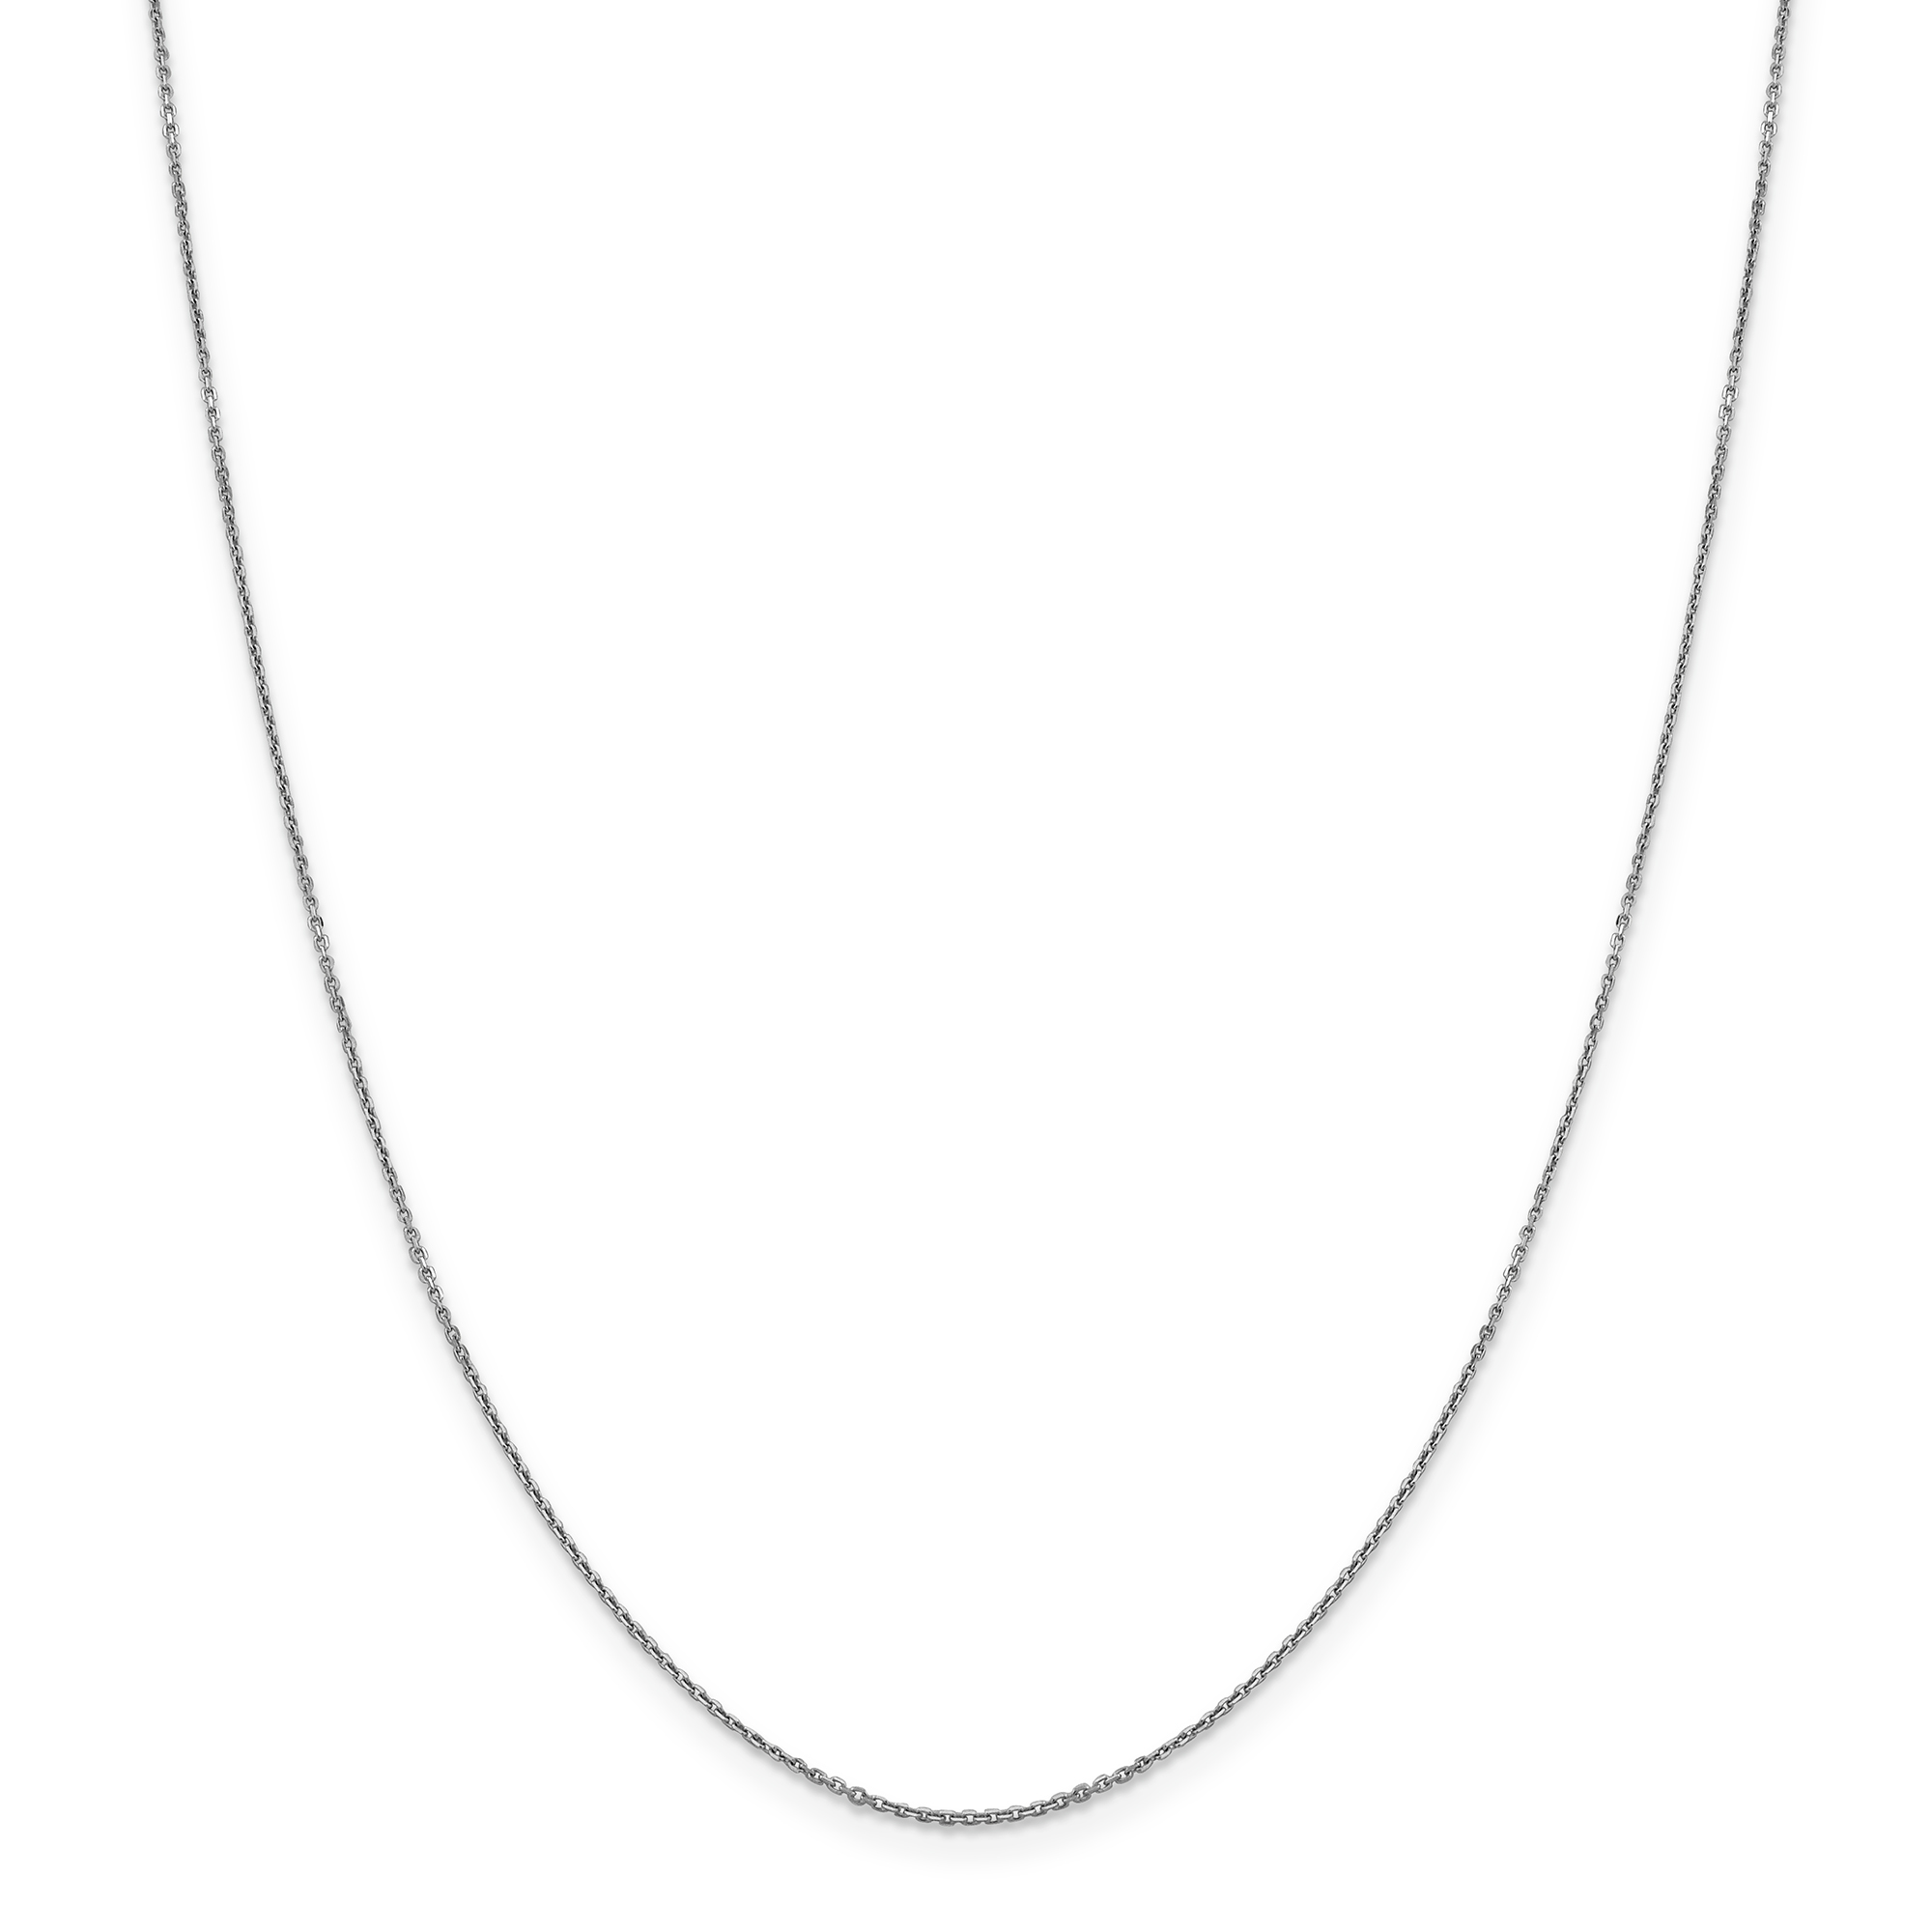 14k White Gold .90mm Link Cable Chain Necklace 20 Inch Pendant Charm Round Fine Jewelry Gifts For Women For Her - image 5 de 5